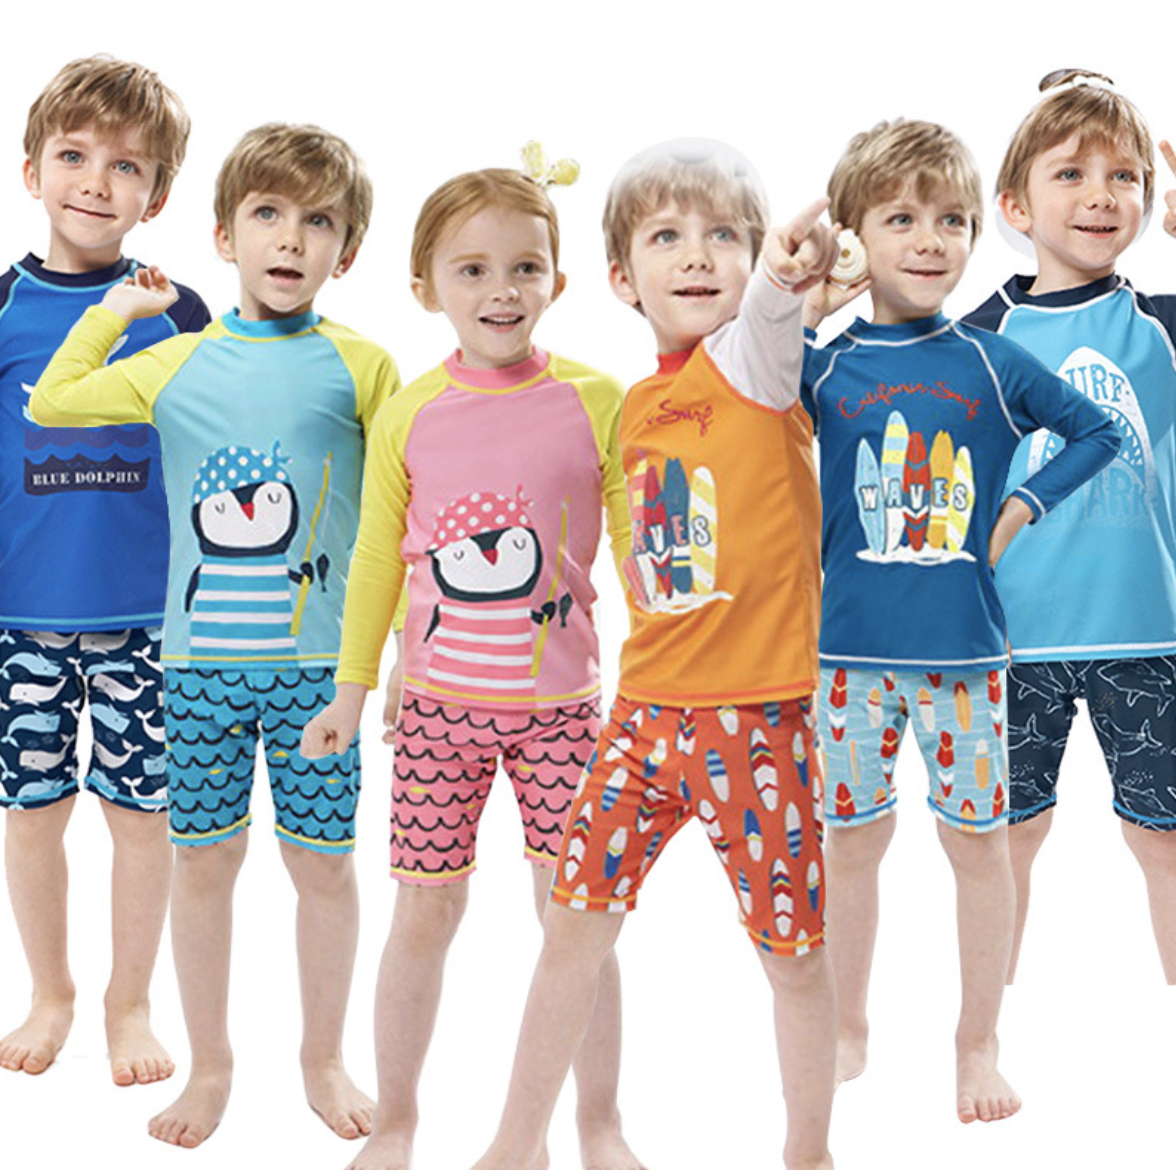 Europe Little Boys And Girls Swimwear Korean Style Little Kids Beach Swimsuits With Sun Protection